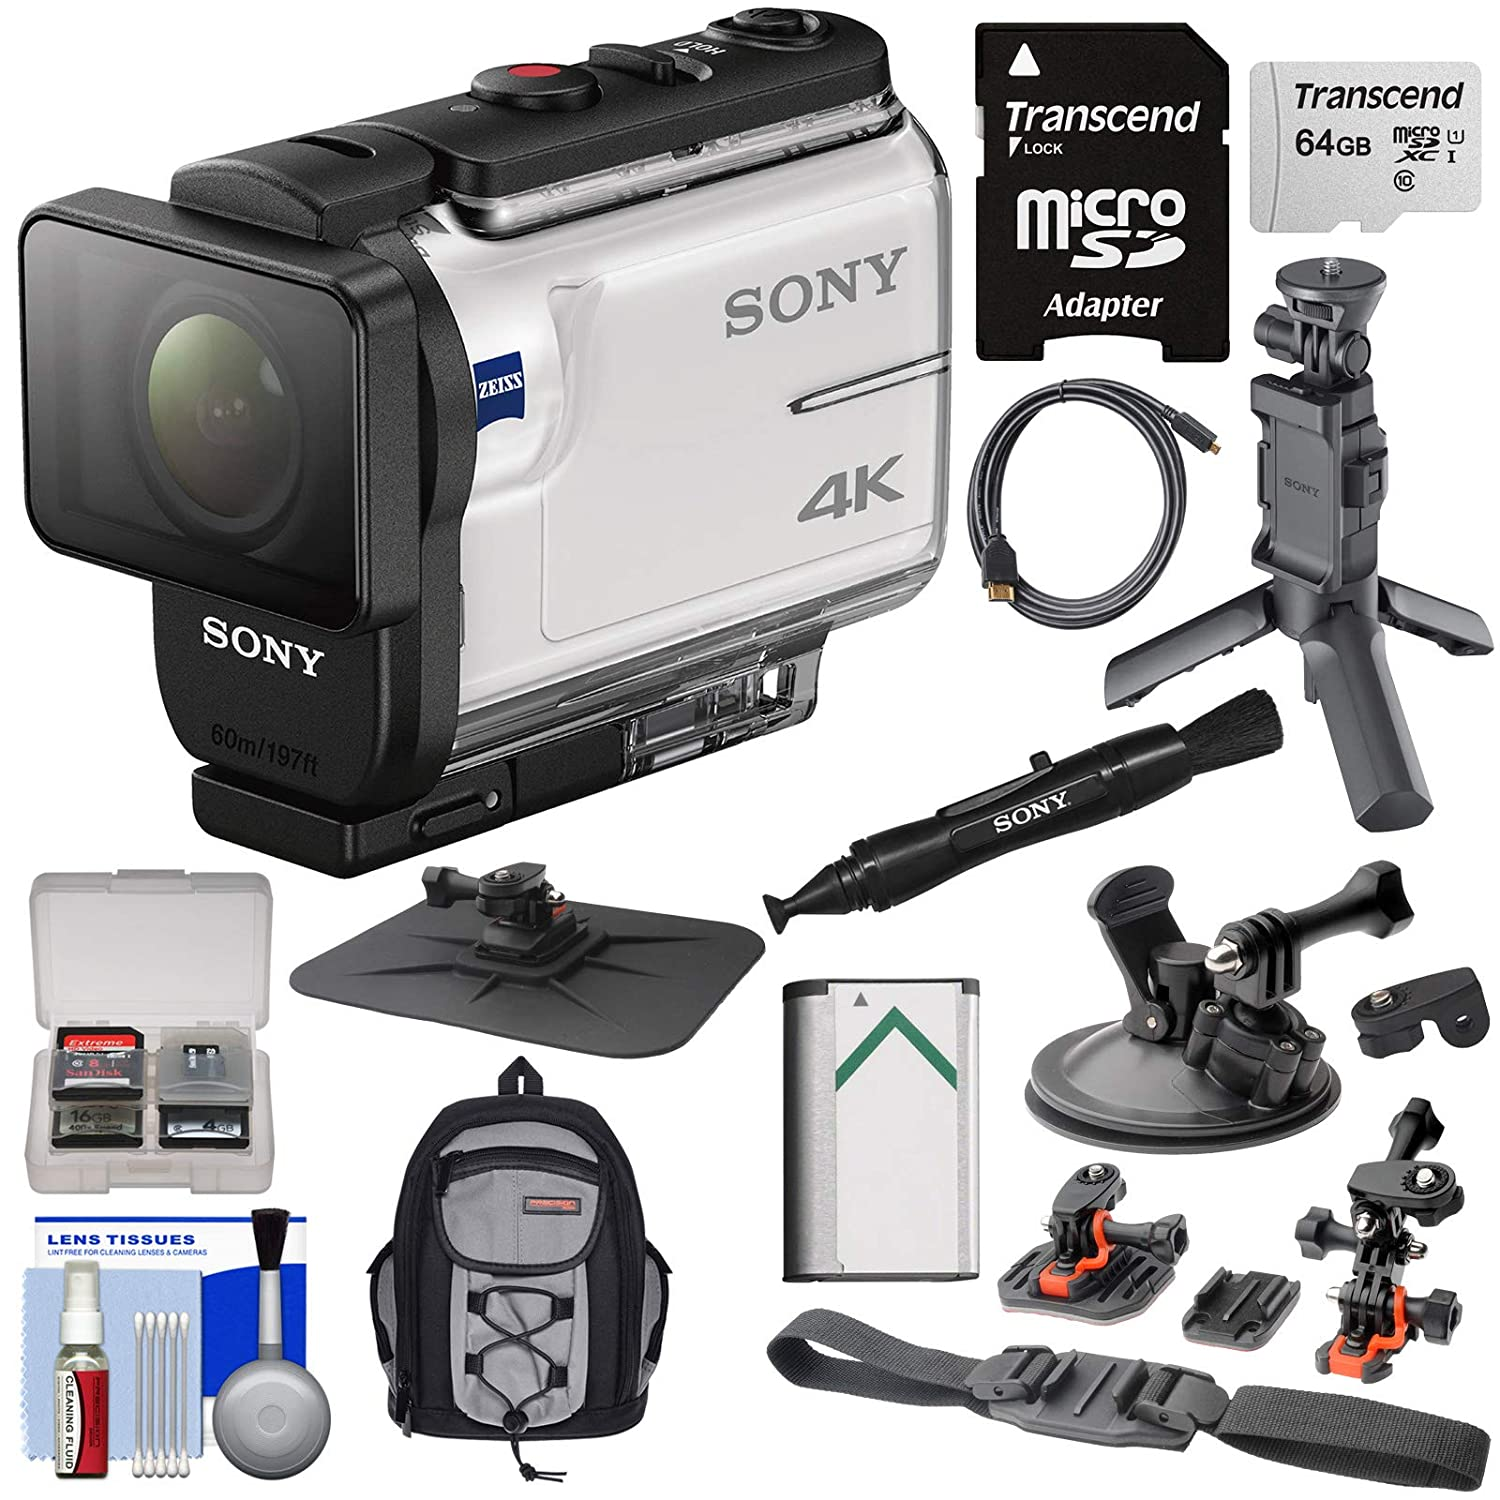 Amazon.com : Sony Action Cam FDR-X3000 Wi-Fi GPS 4K HD Video Camera  Camcorder with Shooting Grip Tripod + Action Mounts + 64GB Card + Battery +  Backpack + ...